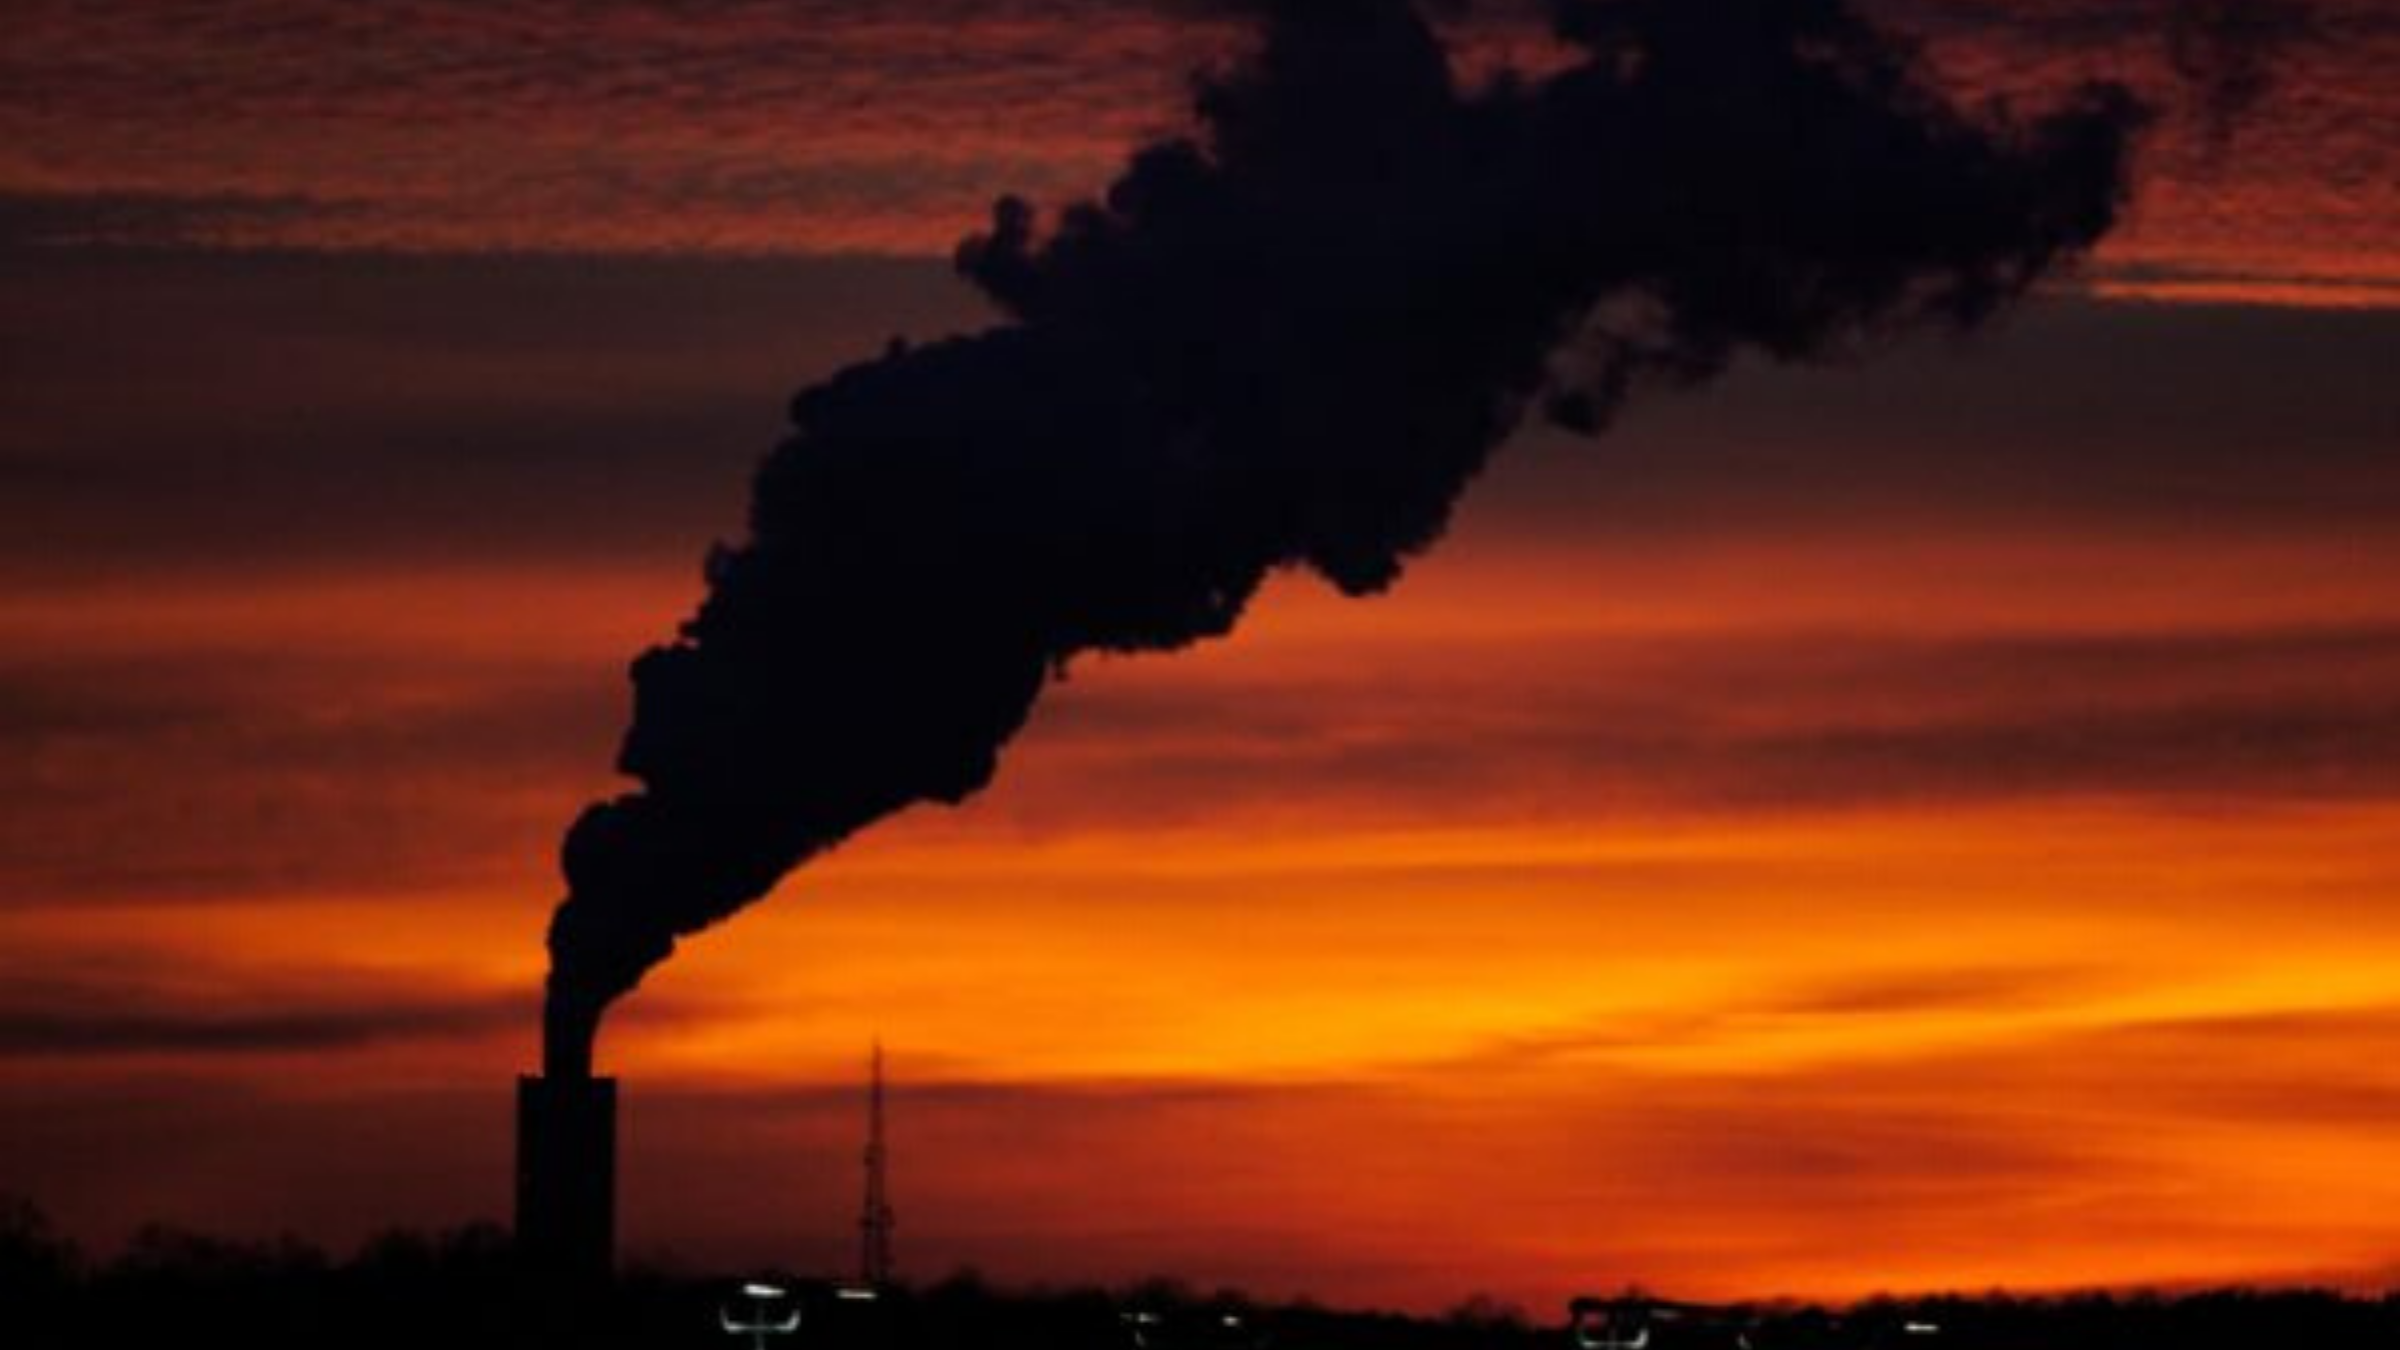 Air Pollution by Burning Plastic: How is it Caused?